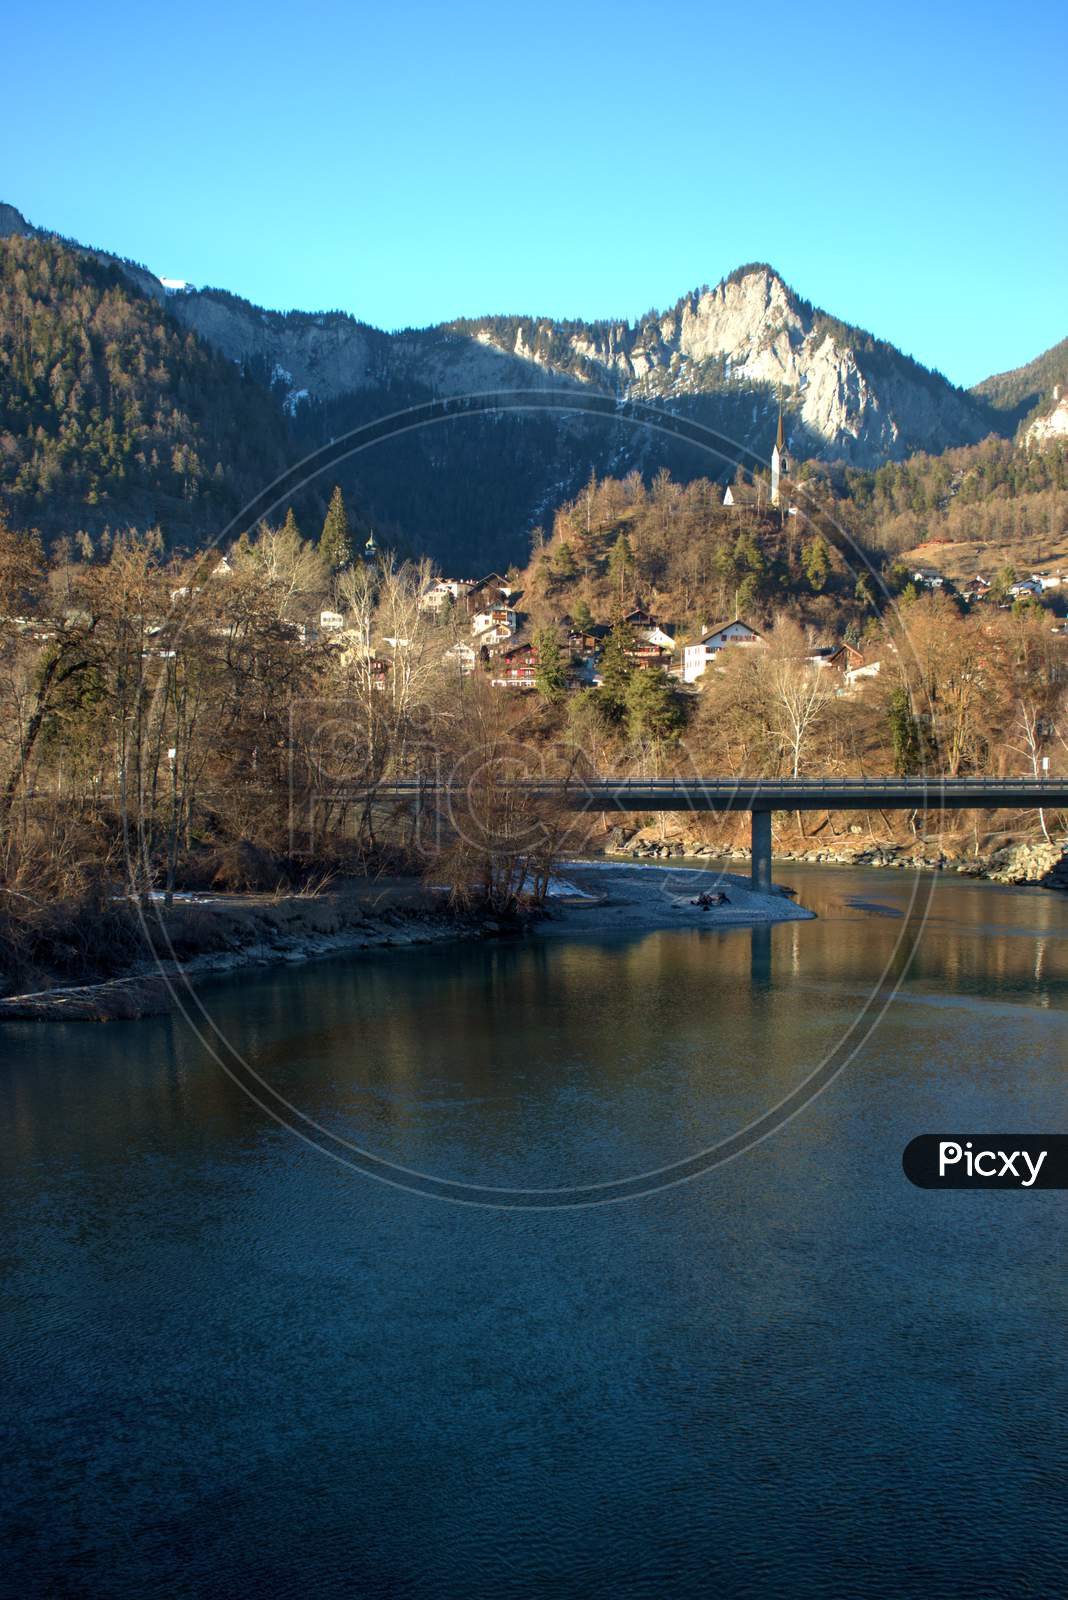 Beautiful Natural Scenery At The Rhine River In Tamins In Switzerland 20.2.2021